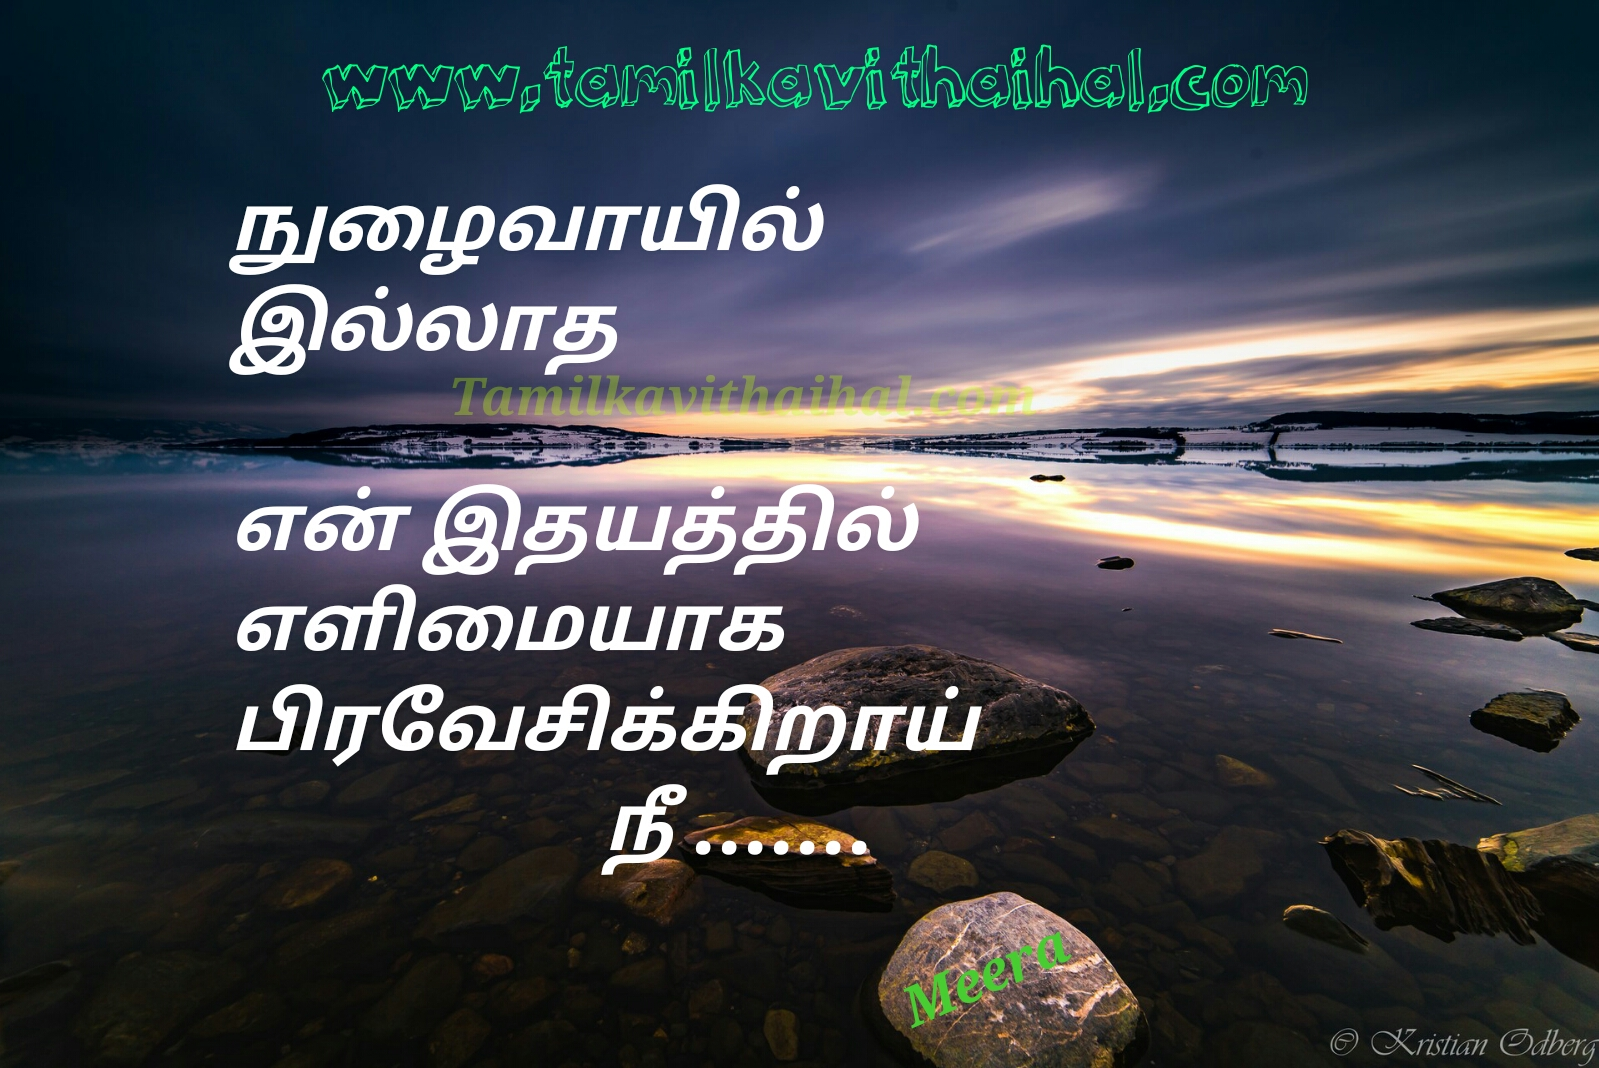 Cute love kavithai romantic love at first sight and look idhayam valkirai meera poem whatsapp images download